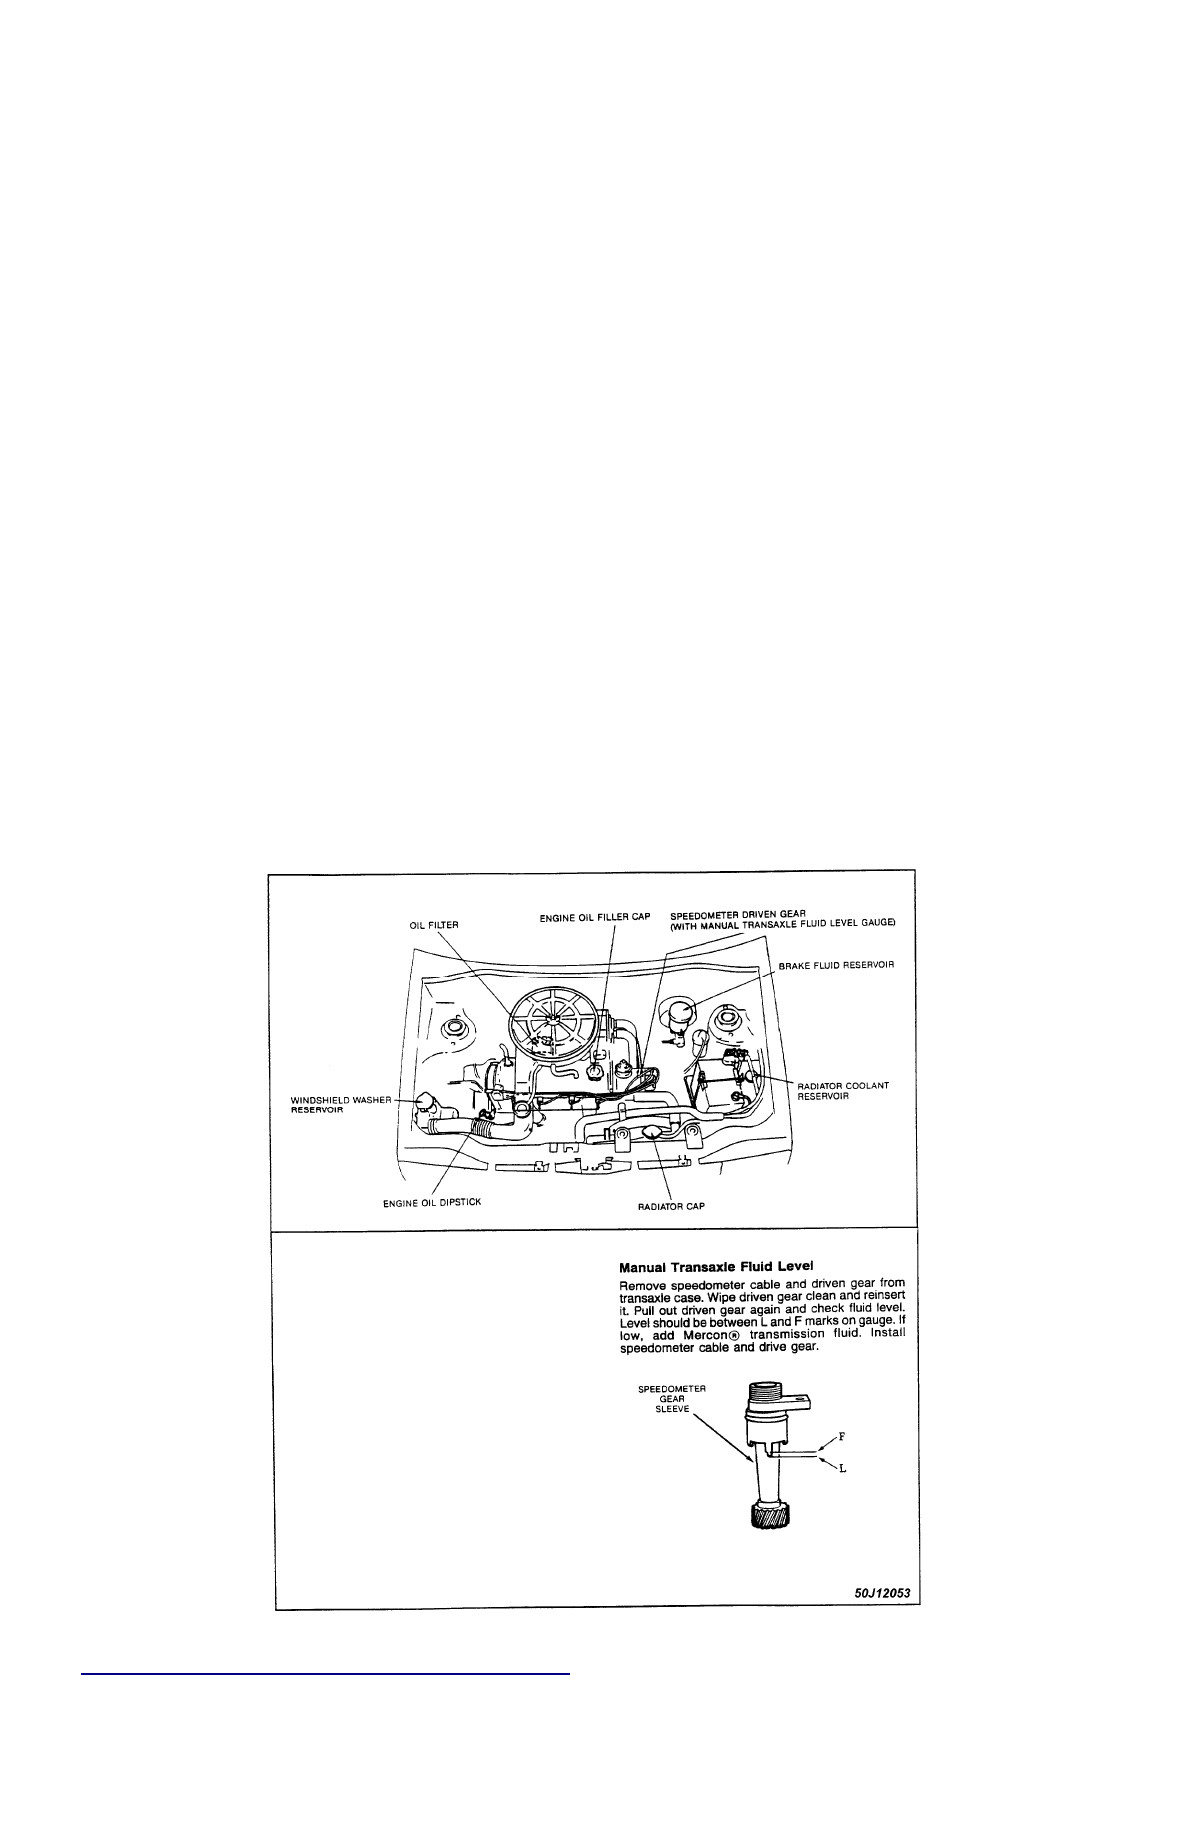 Ford Festiva. Instruction - part 92 on ford pinto ignition wiring diagram, ford falcon ignition wiring diagram, ford fairmont ignition wiring diagram, ford festiva carburetor diagram, ford 8n ignition wiring diagram, 1997 ford wiring diagram, ford festiva radio wiring, ford f-150 ignition wiring diagram, ford festiva engine diagram, ford festiva wiring harness diagram, 1937 ford ignition wiring diagram, ford mustang ignition wiring diagram, ford f250 ignition wiring diagram, ford festiva transmission diagram, ford e250 ignition wiring diagram, ford expedition ignition wiring diagram,